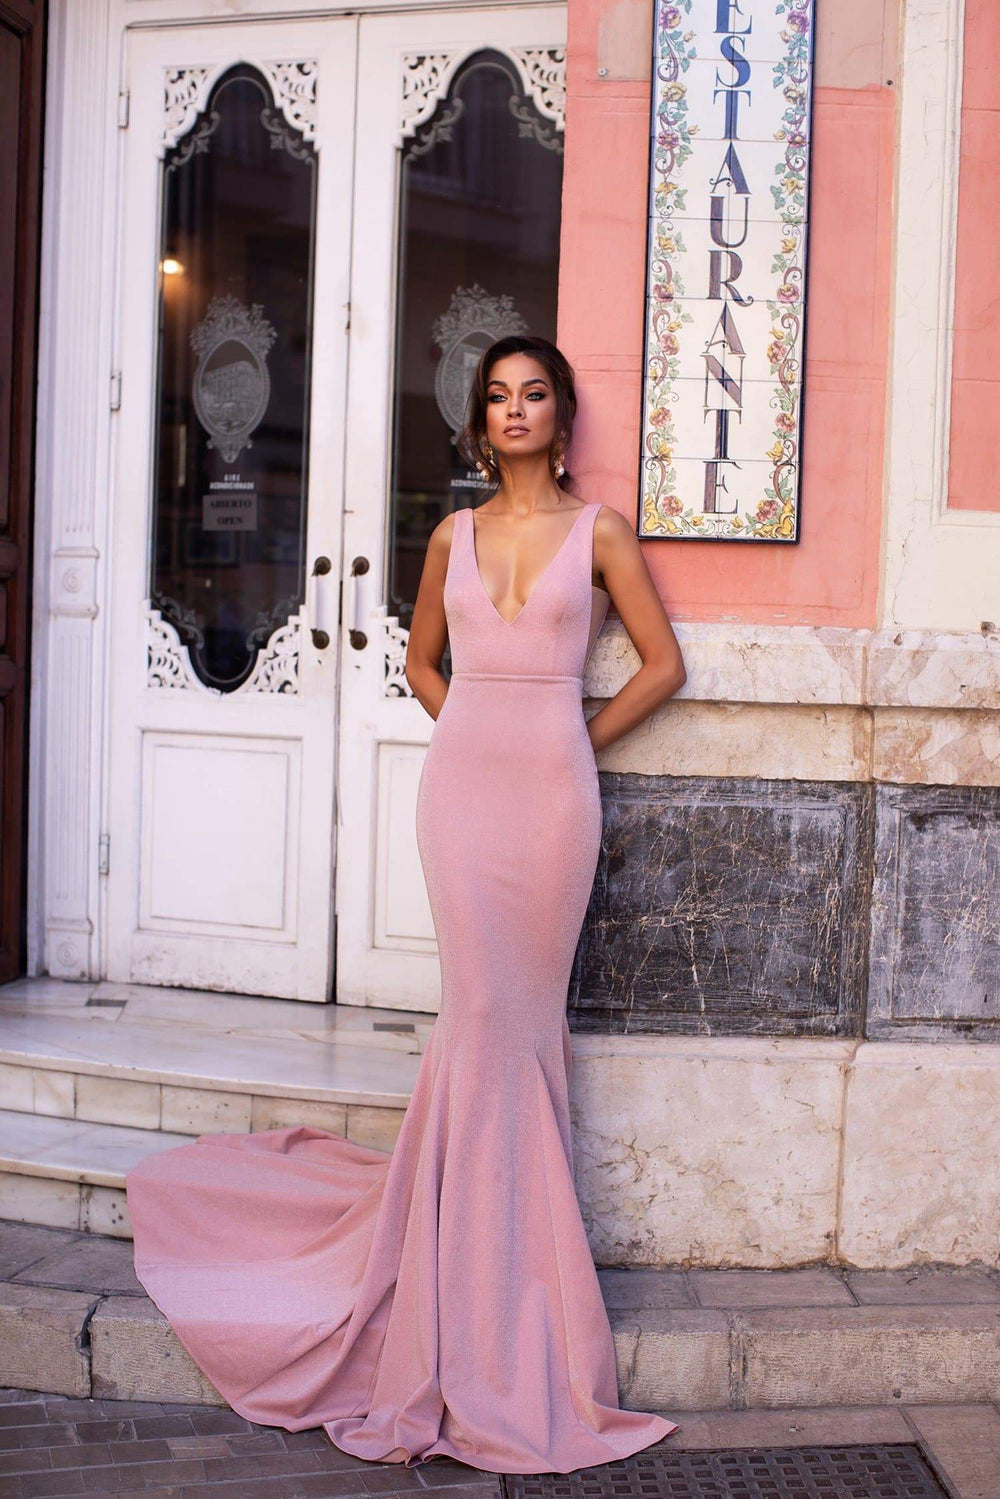 Bilquis - Dusty Pink Shimmering Backless Mermaid Gown with Mesh Inserts